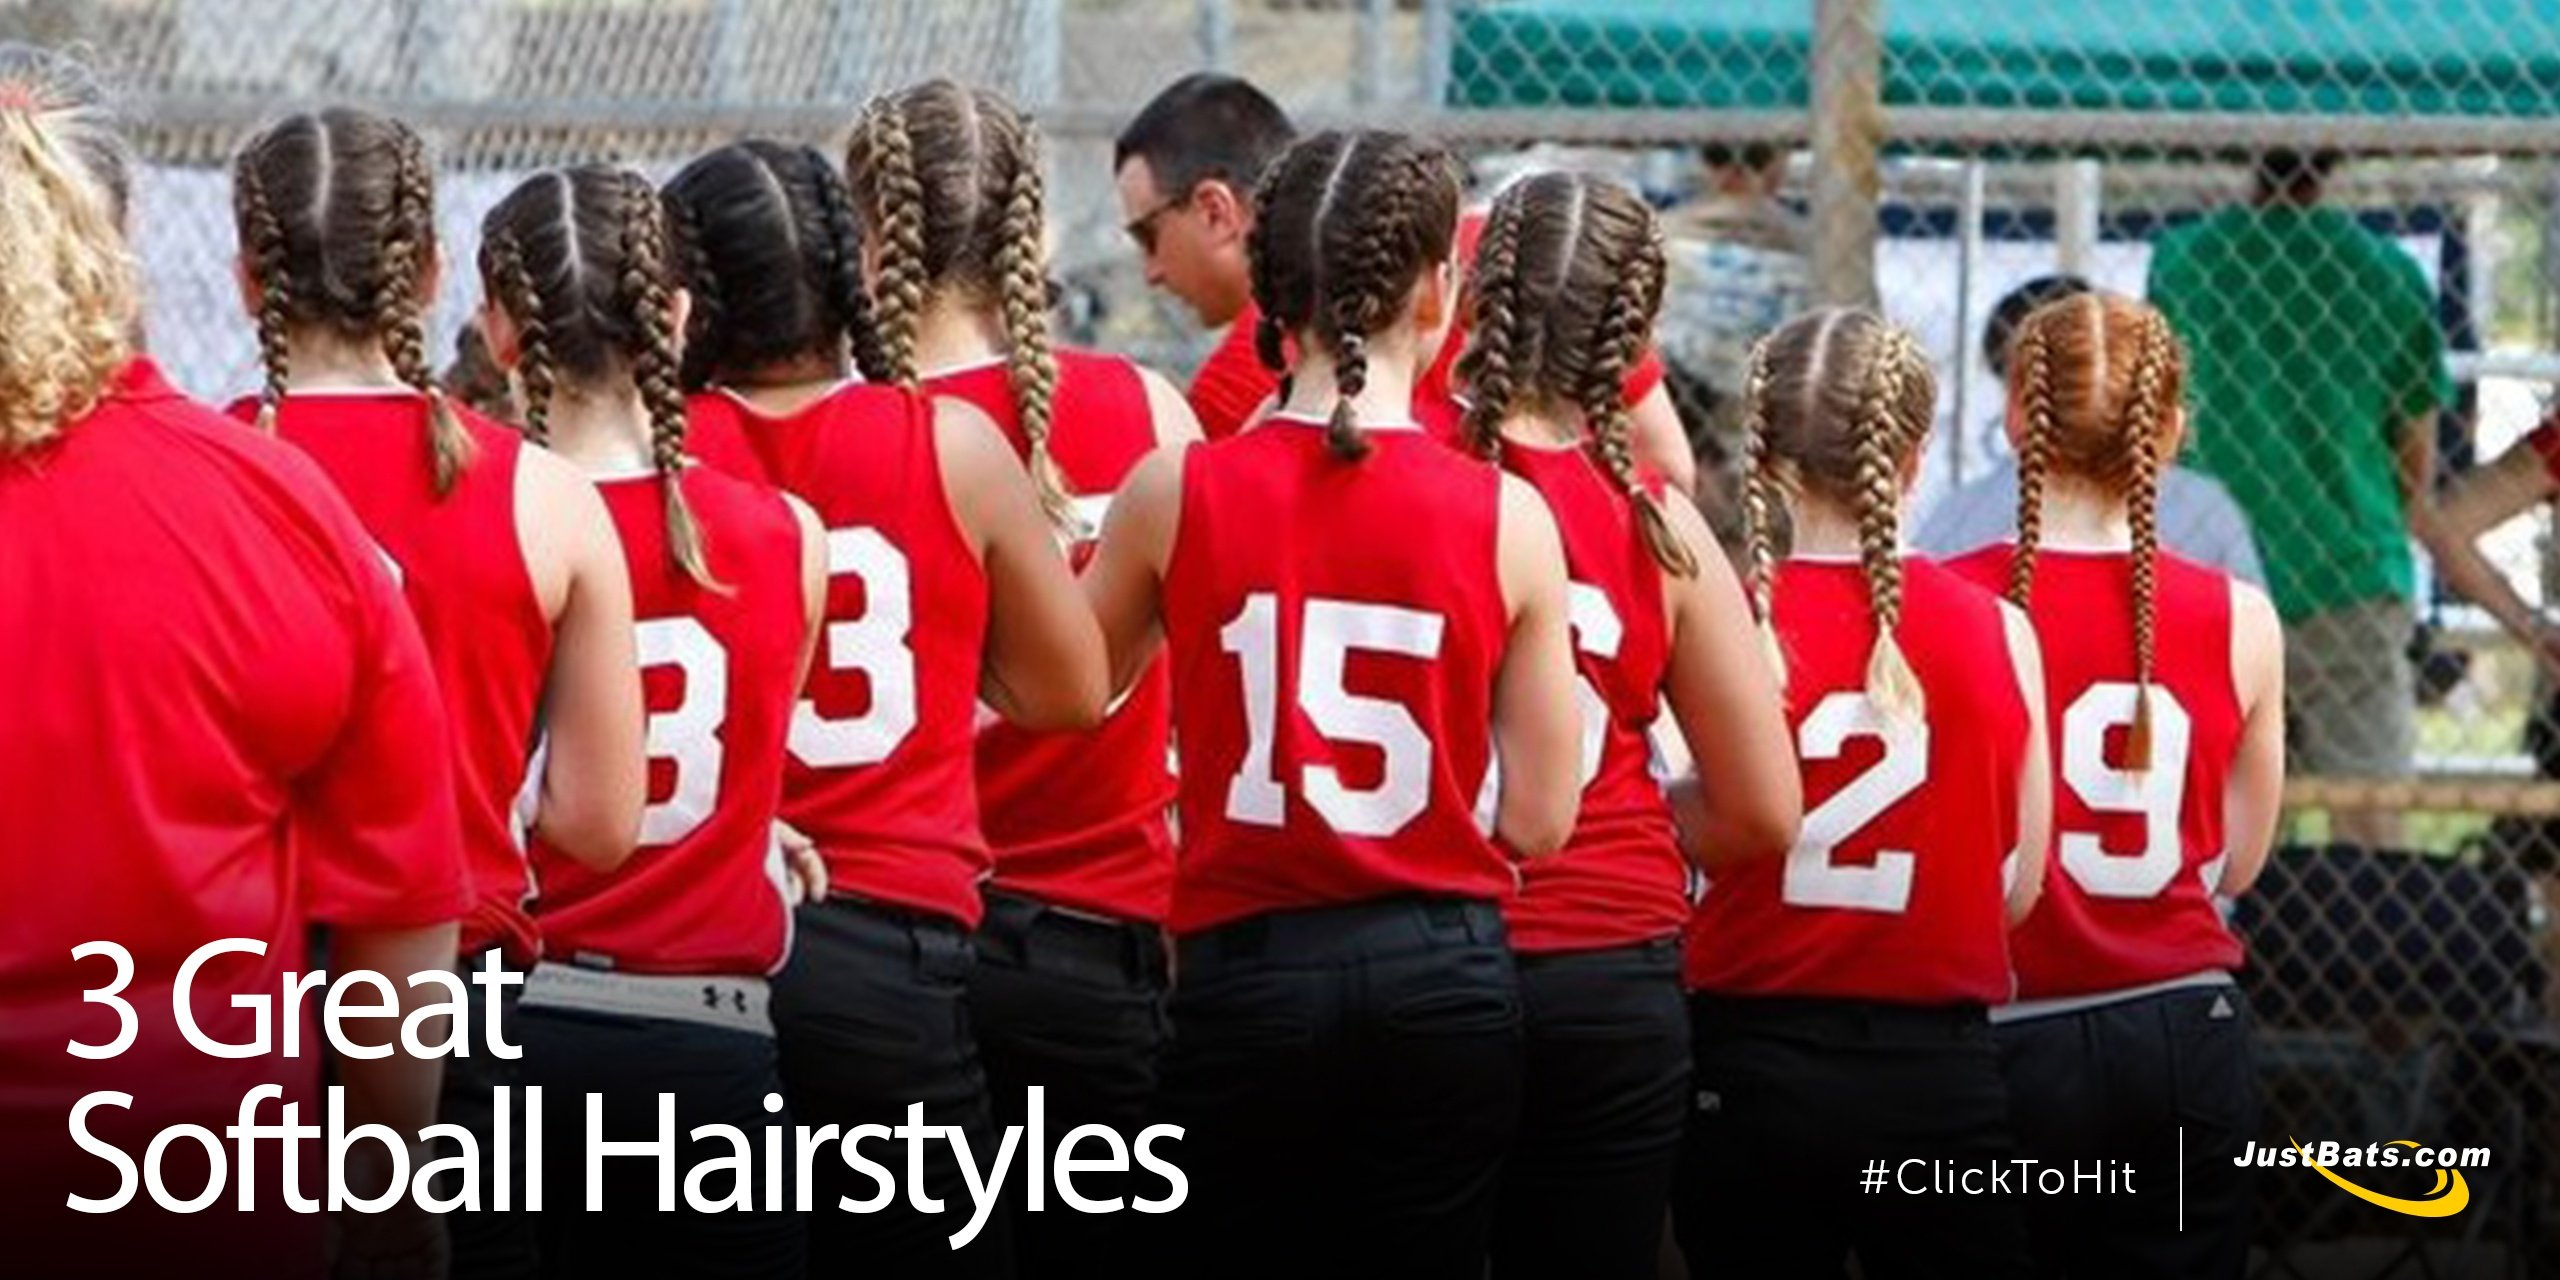 3 Great Softball Hairstyles - Blog